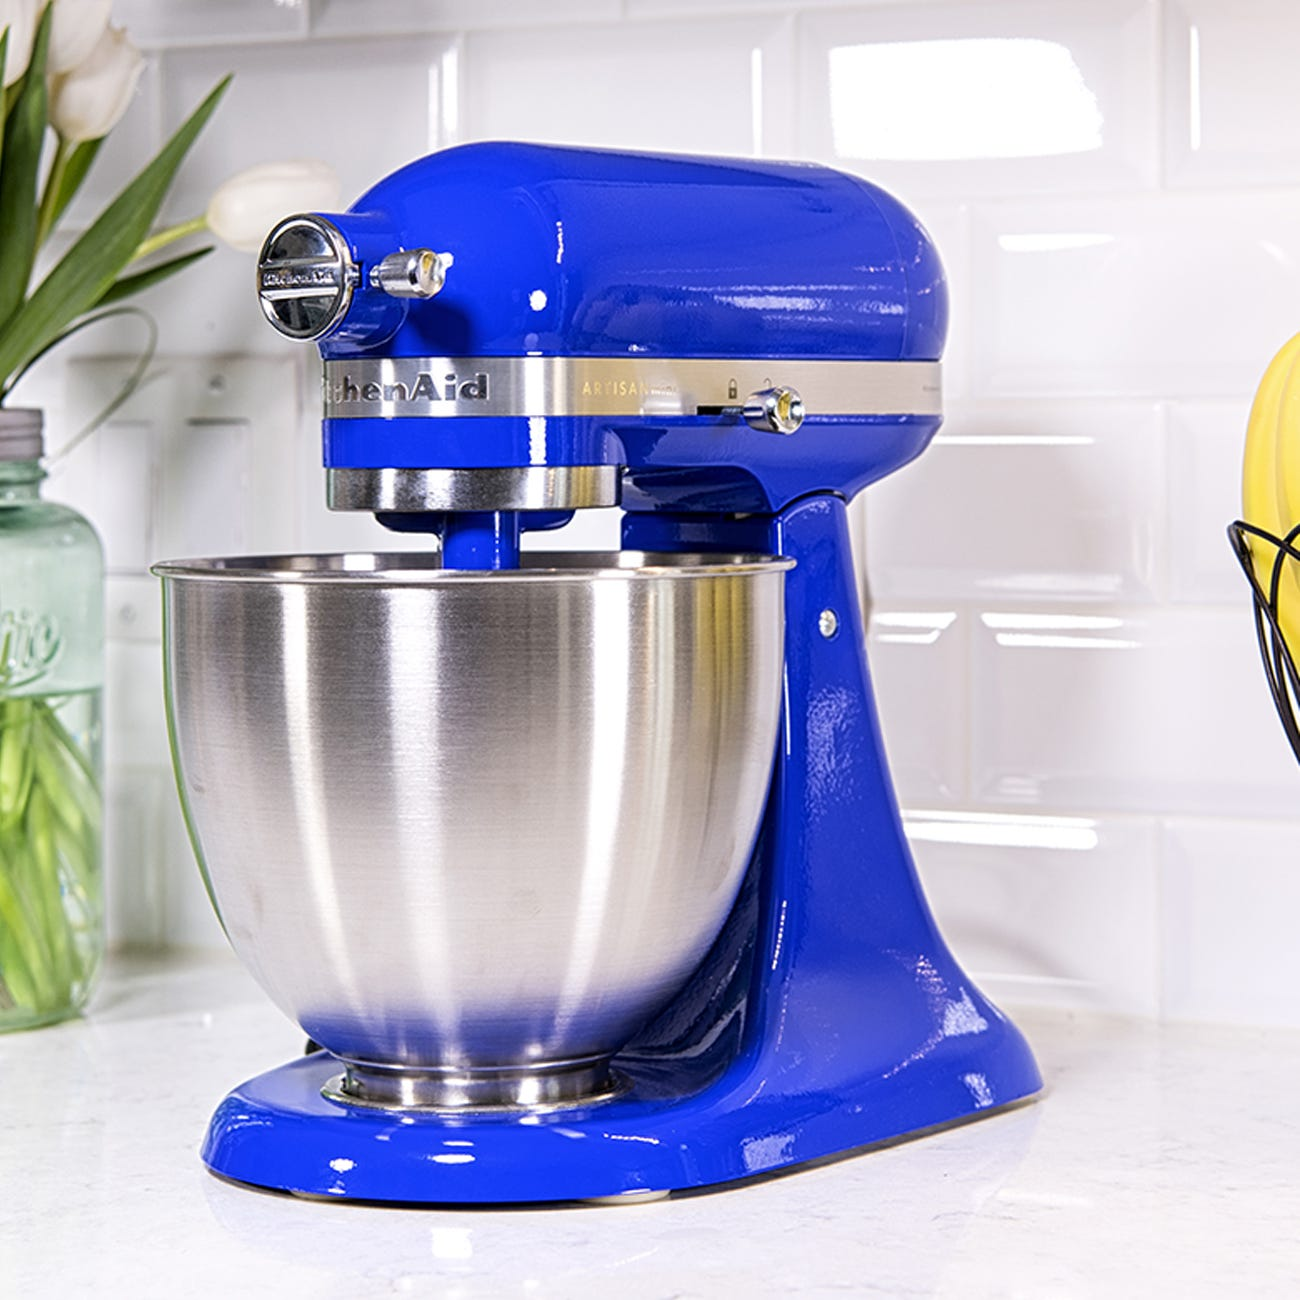 There are amazing kitchen products as part of today's deals.